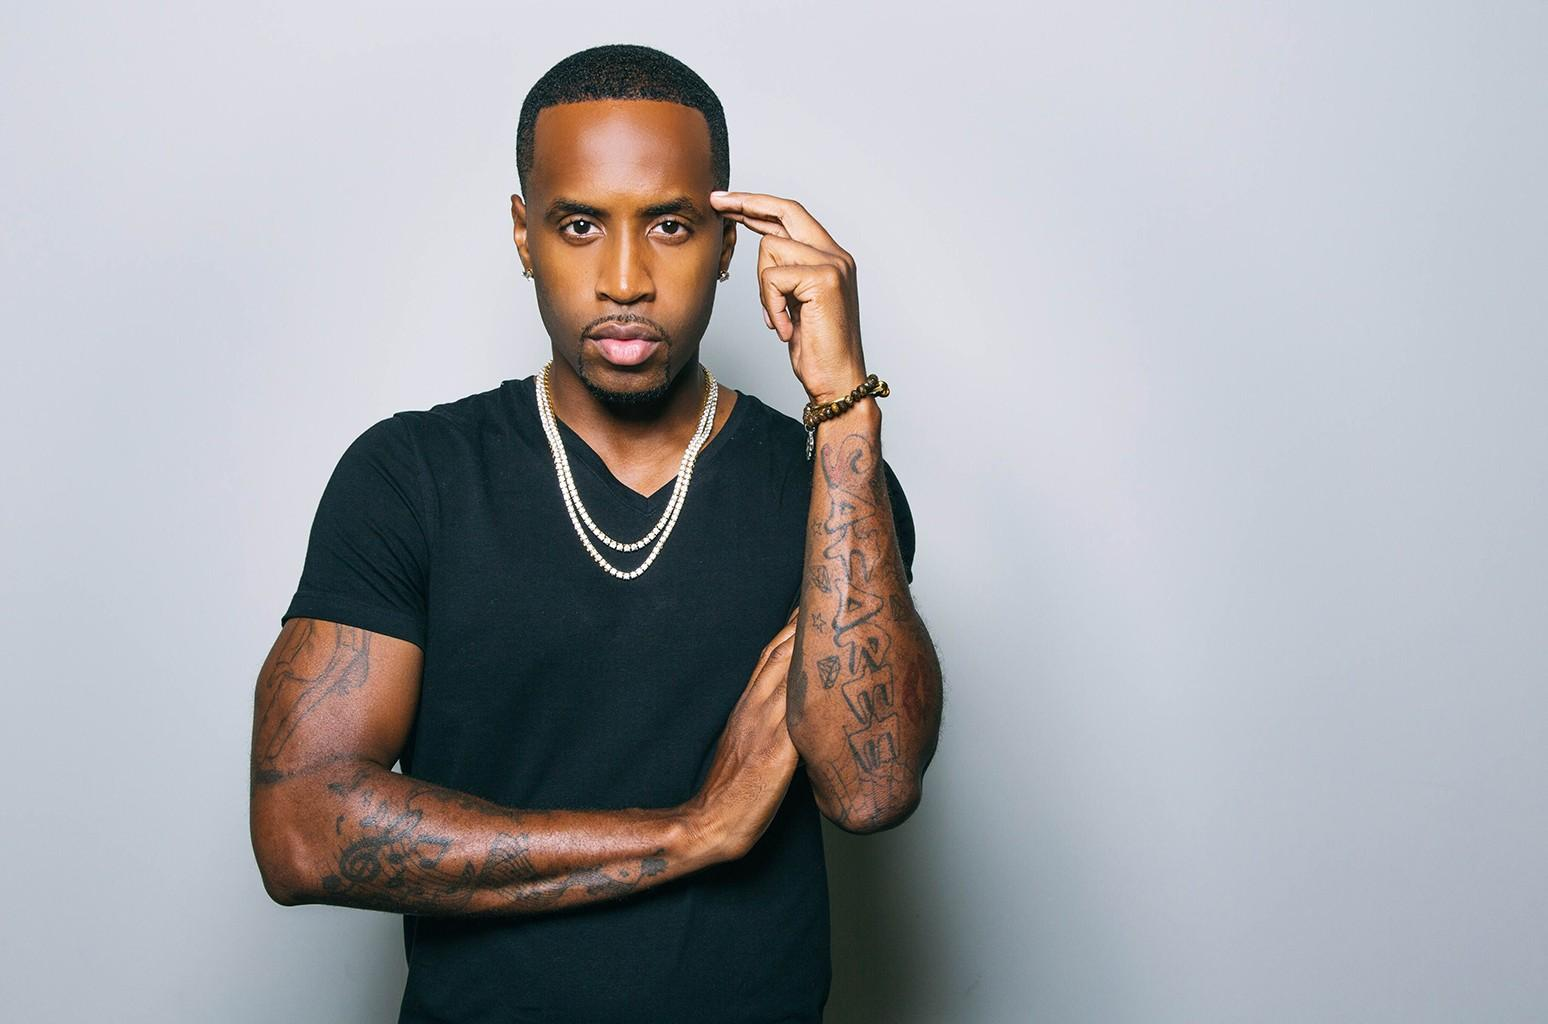 Safaree's Latest Video Has Fans Praising Him